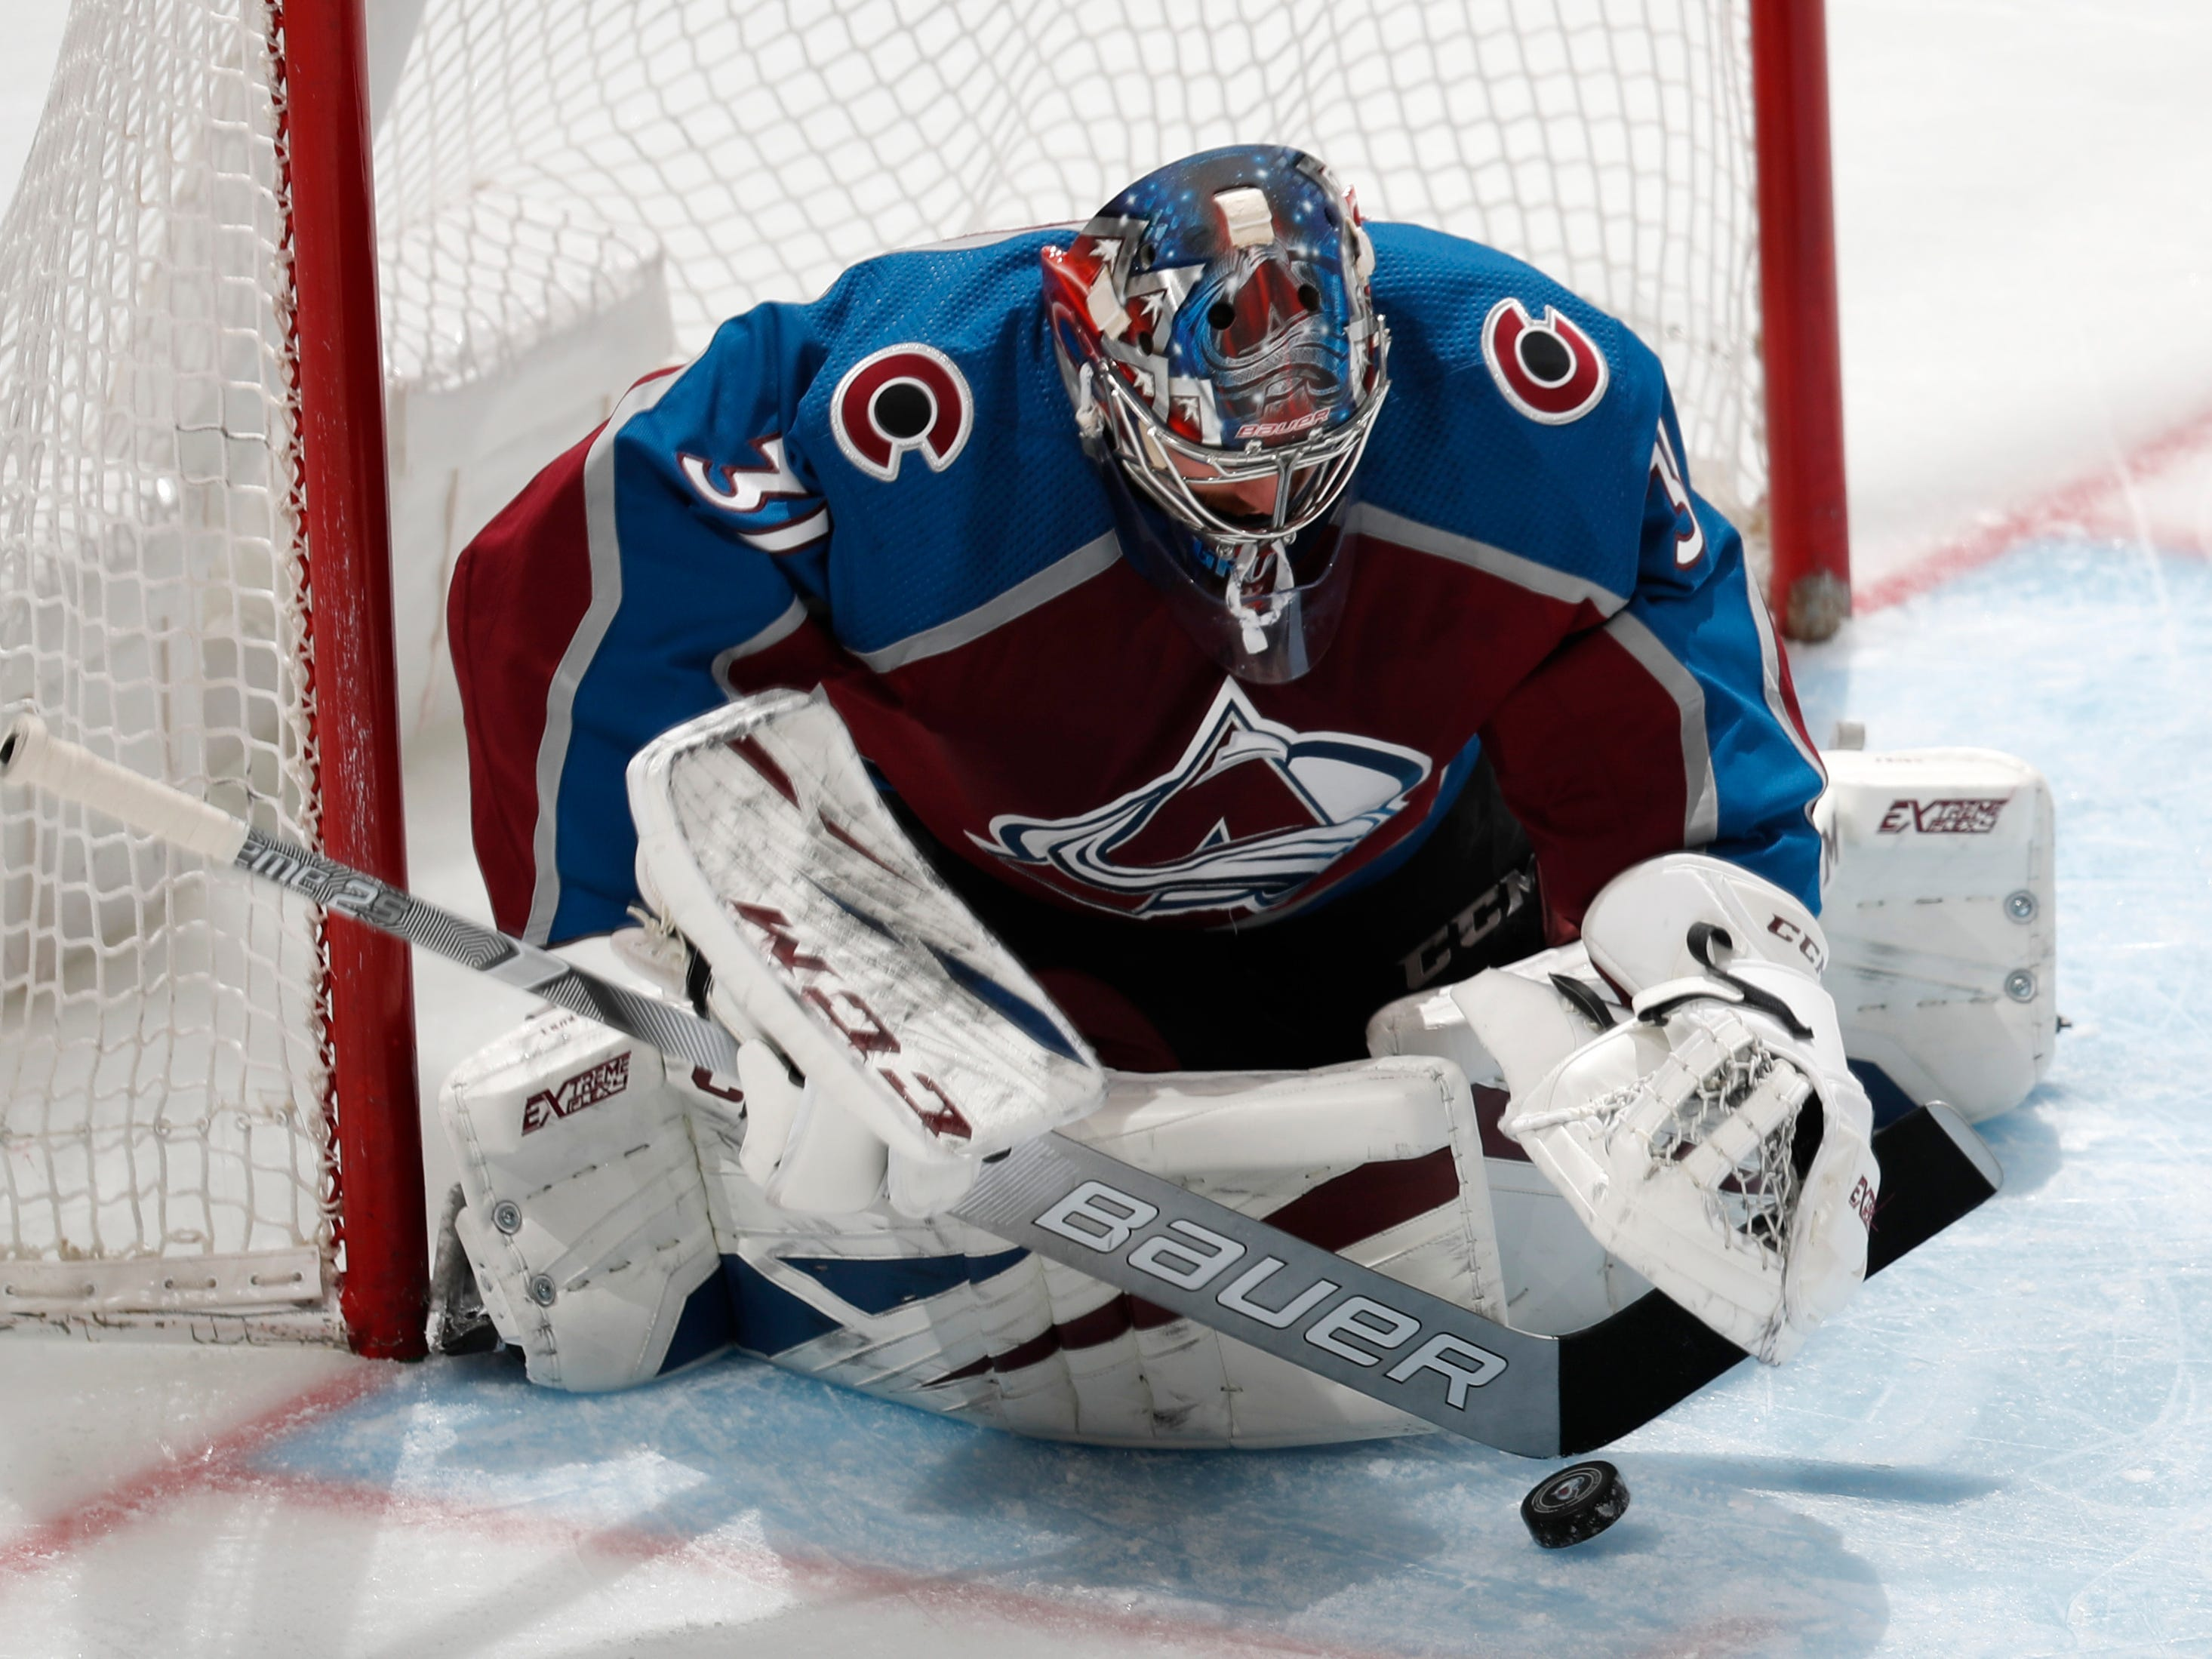 Colorado Avalanche goaltender Philipp Grubauer makes a stick-save against the Arizona Coyotes in the first period of an NHL hockey game Friday, March 29, 2019, in Denver.